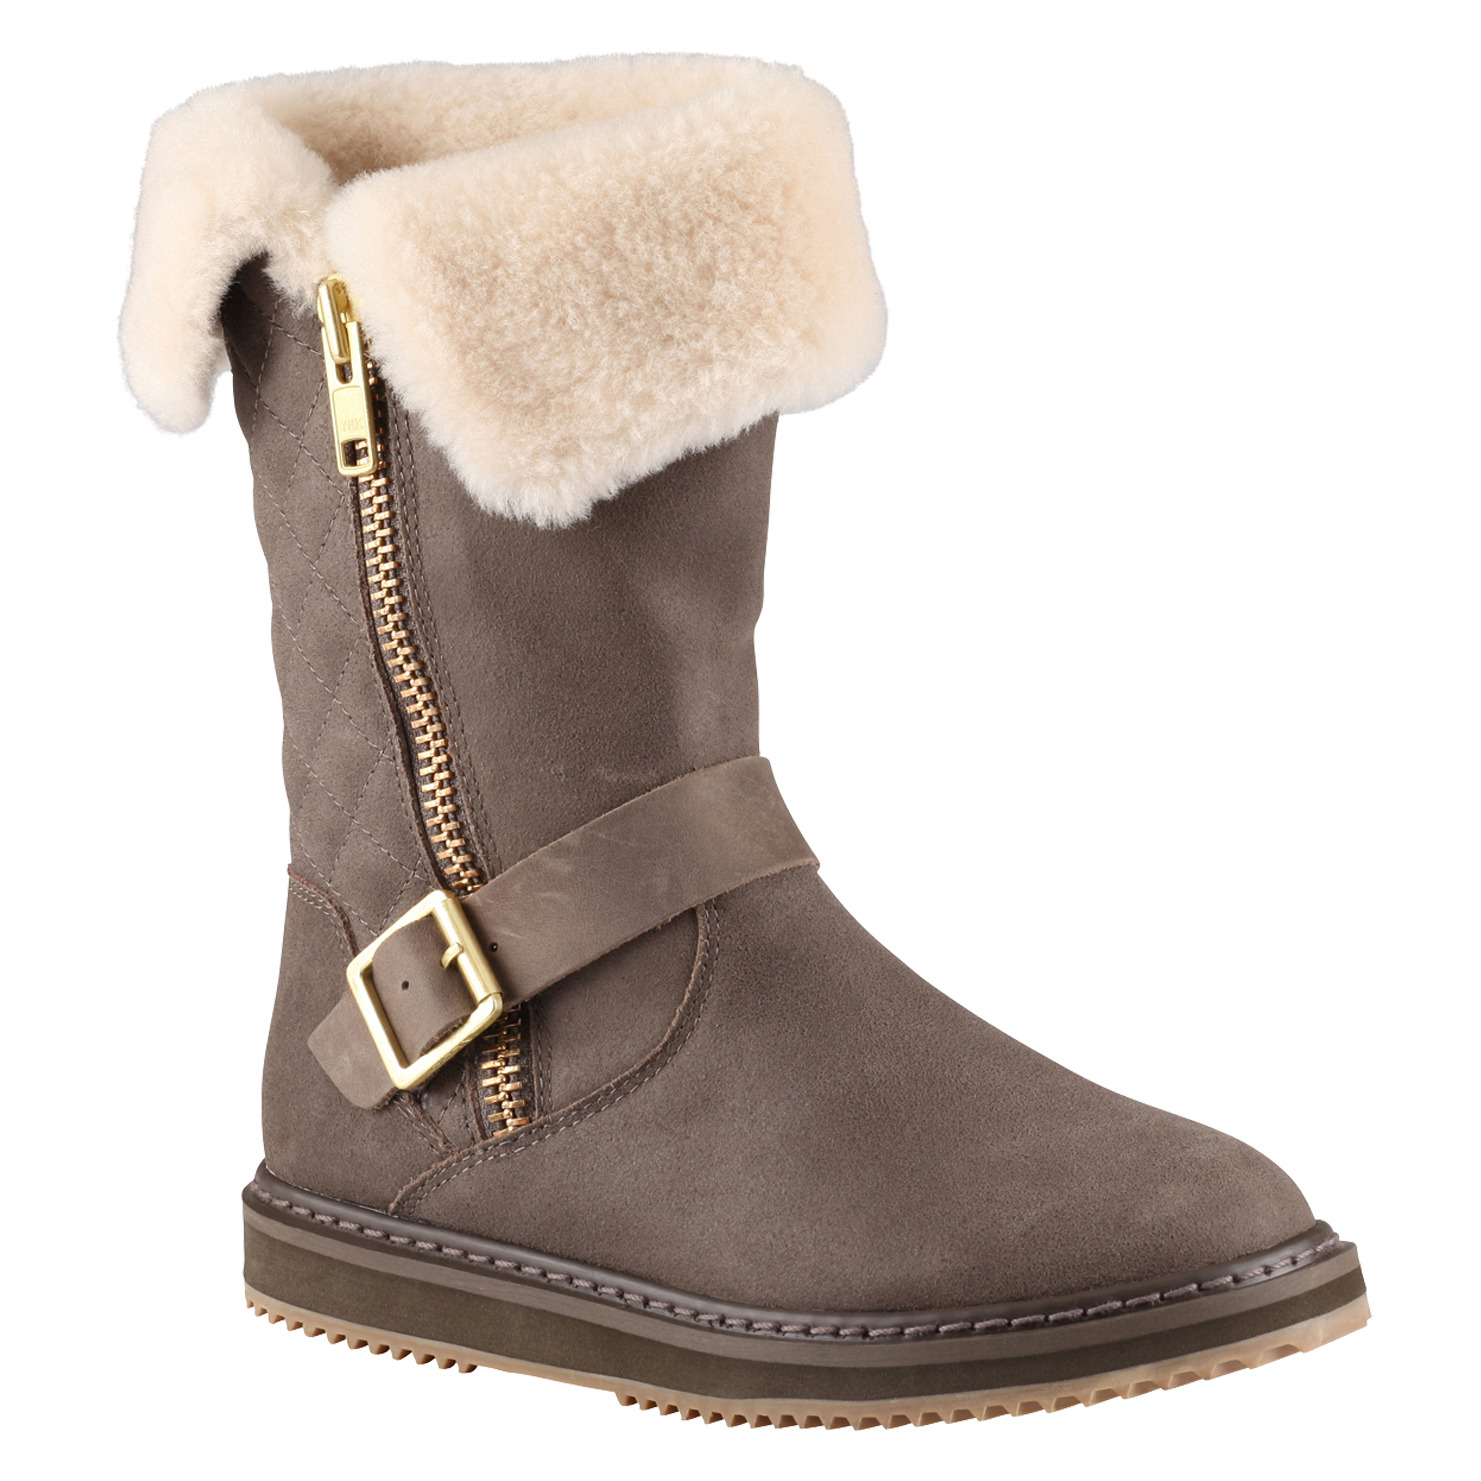 nilsby s cold weather boots boots from aldo